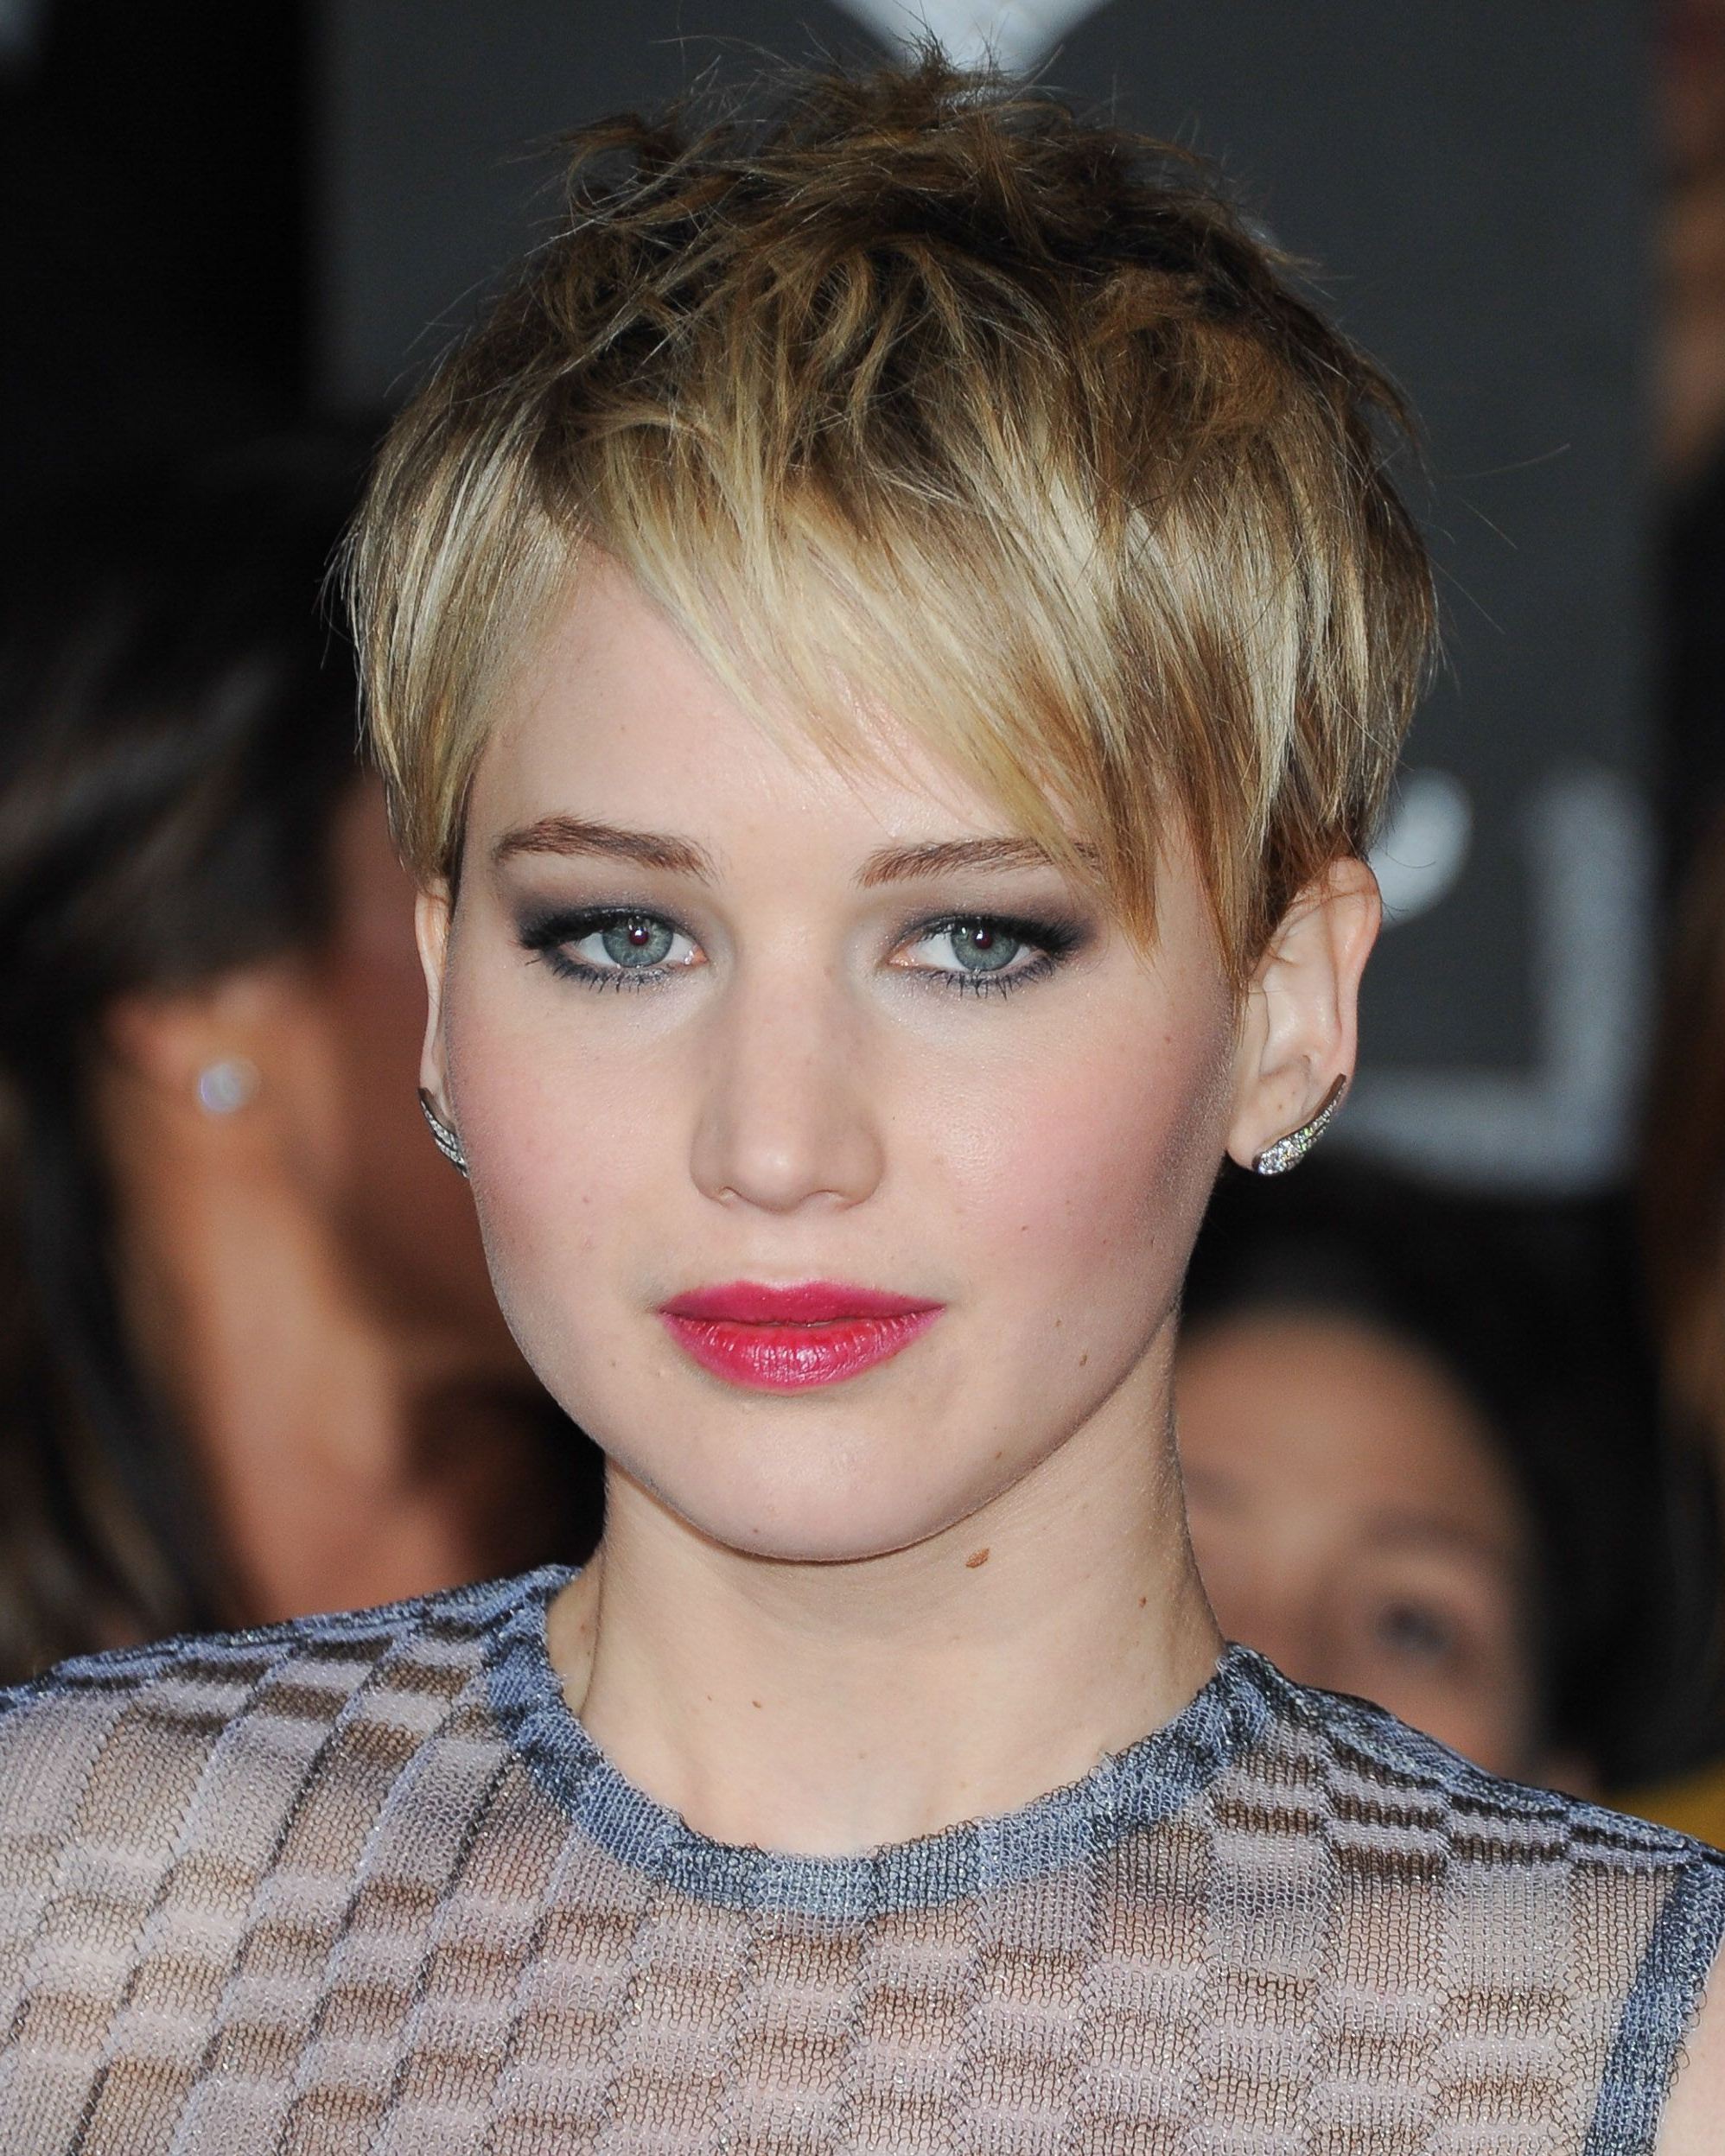 32 Best Short Hair Styles – Bobs, Pixie Cuts, And More Celebrity In Short Haircuts Bobs Crops (View 13 of 26)